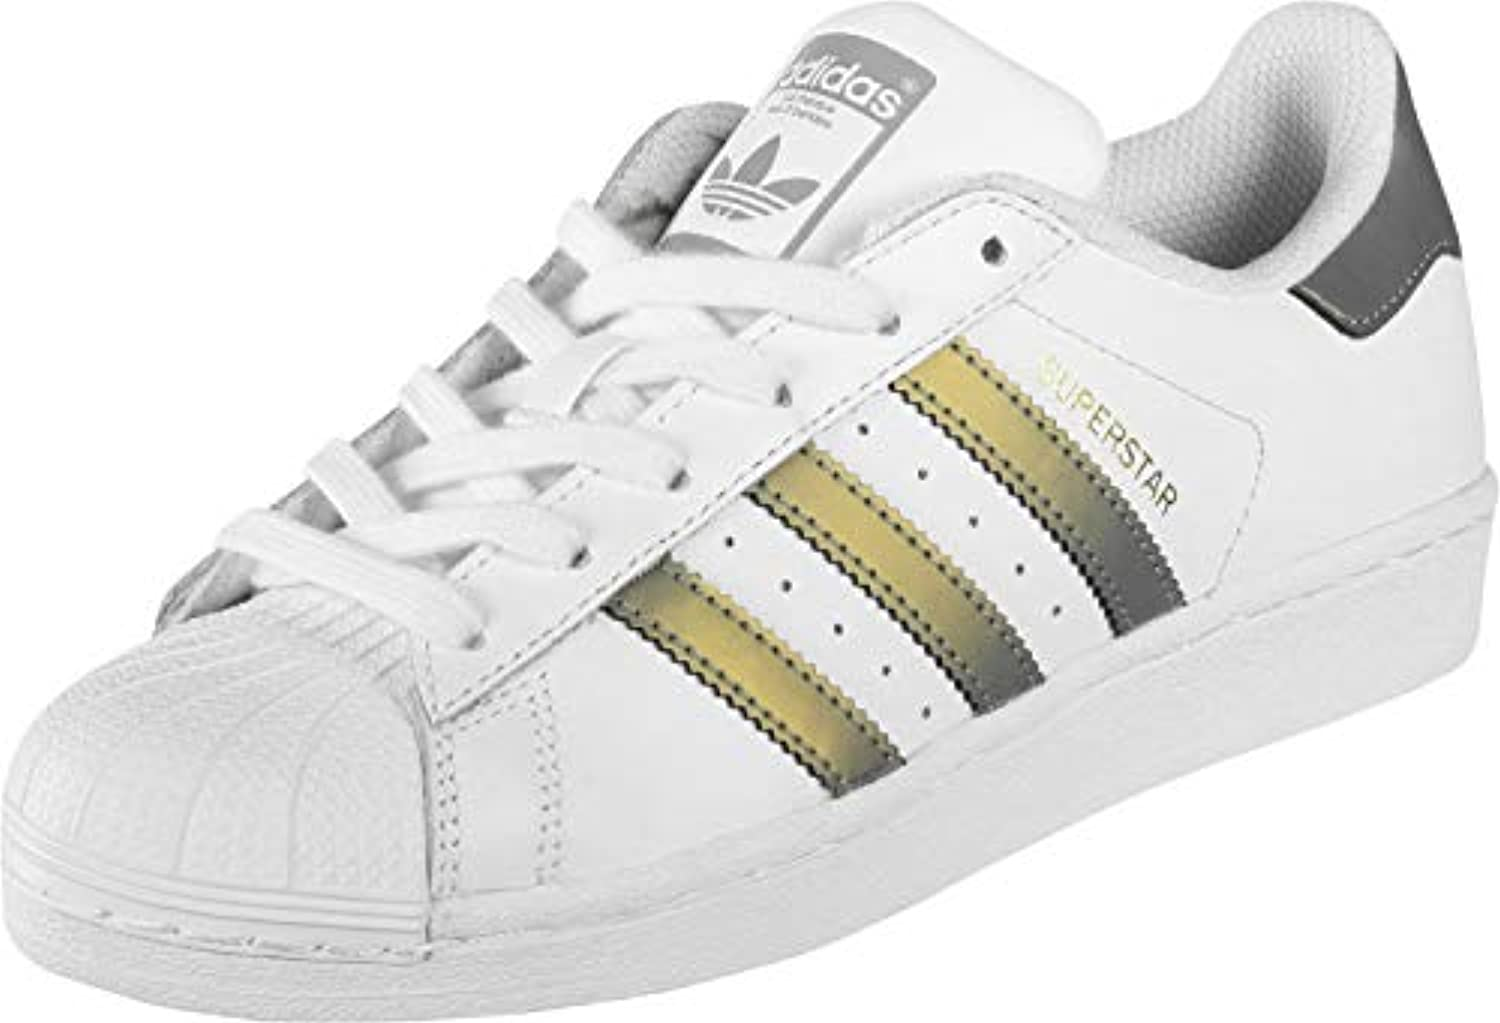 Adidas Superstar, Baskets Baskets Superstar, Mode Femme fc0d1e